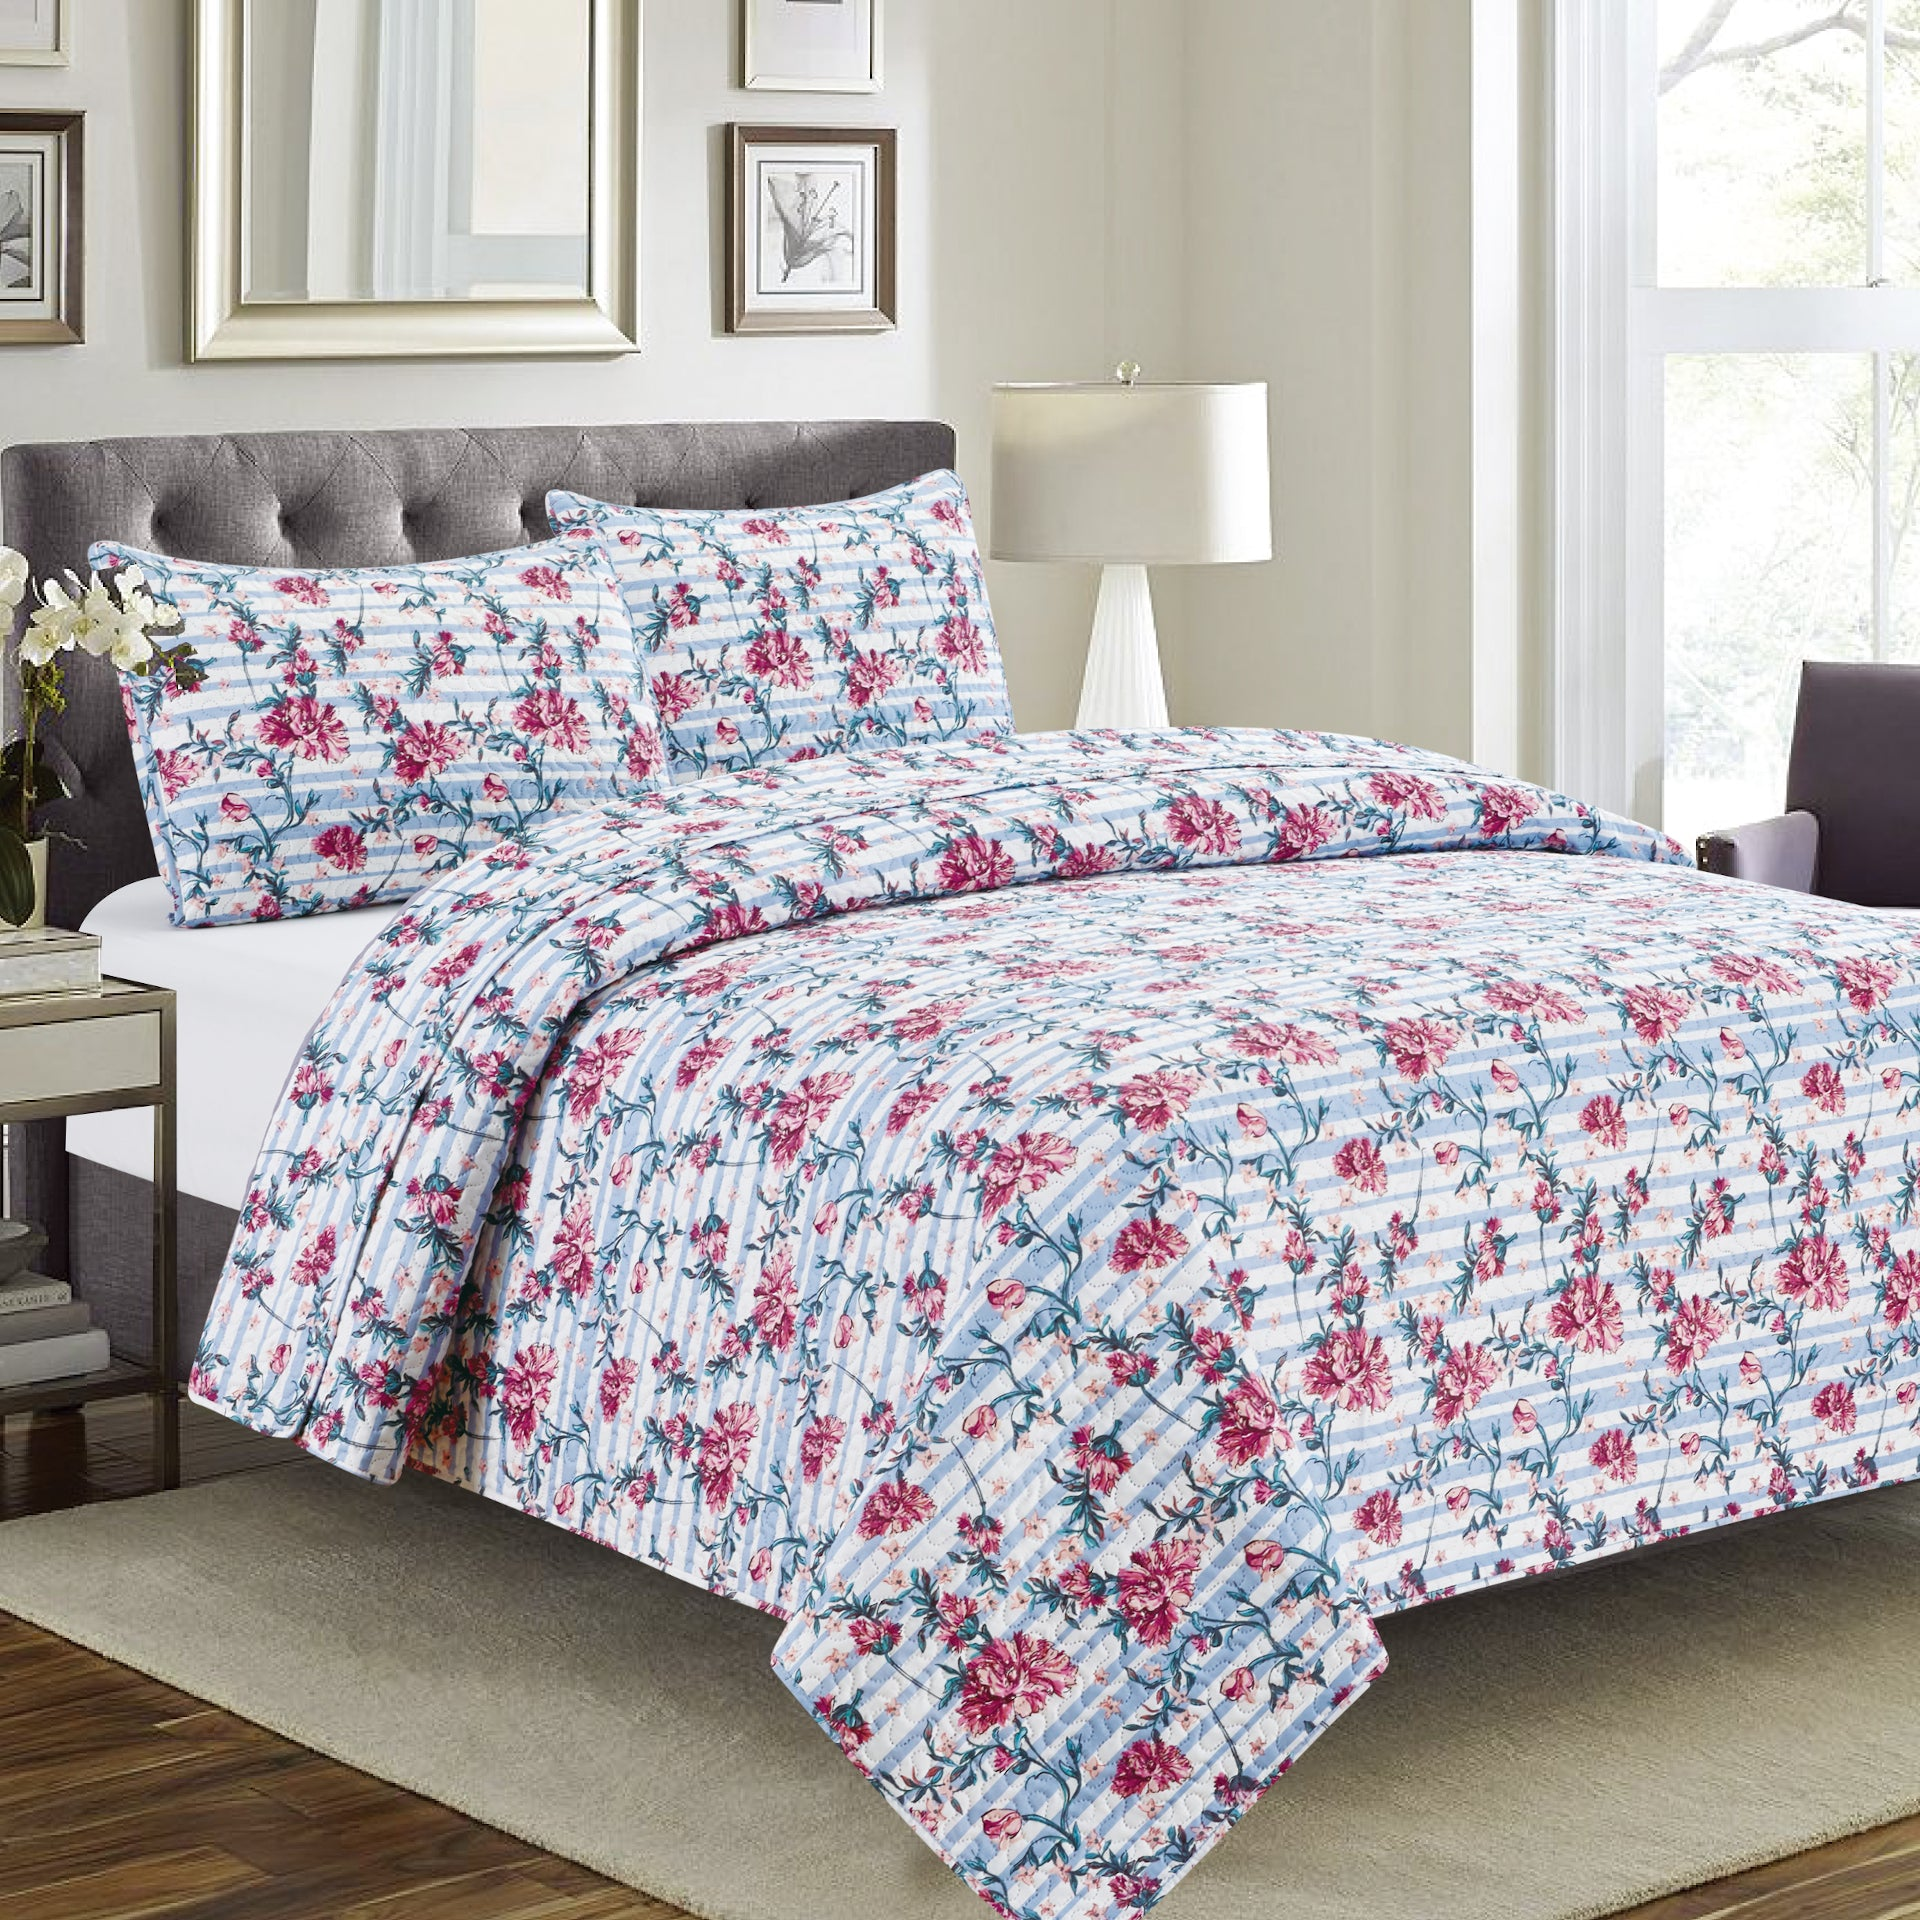 Ruth - 3 Piece Quilt Set - Multi Color - Glory Home Design